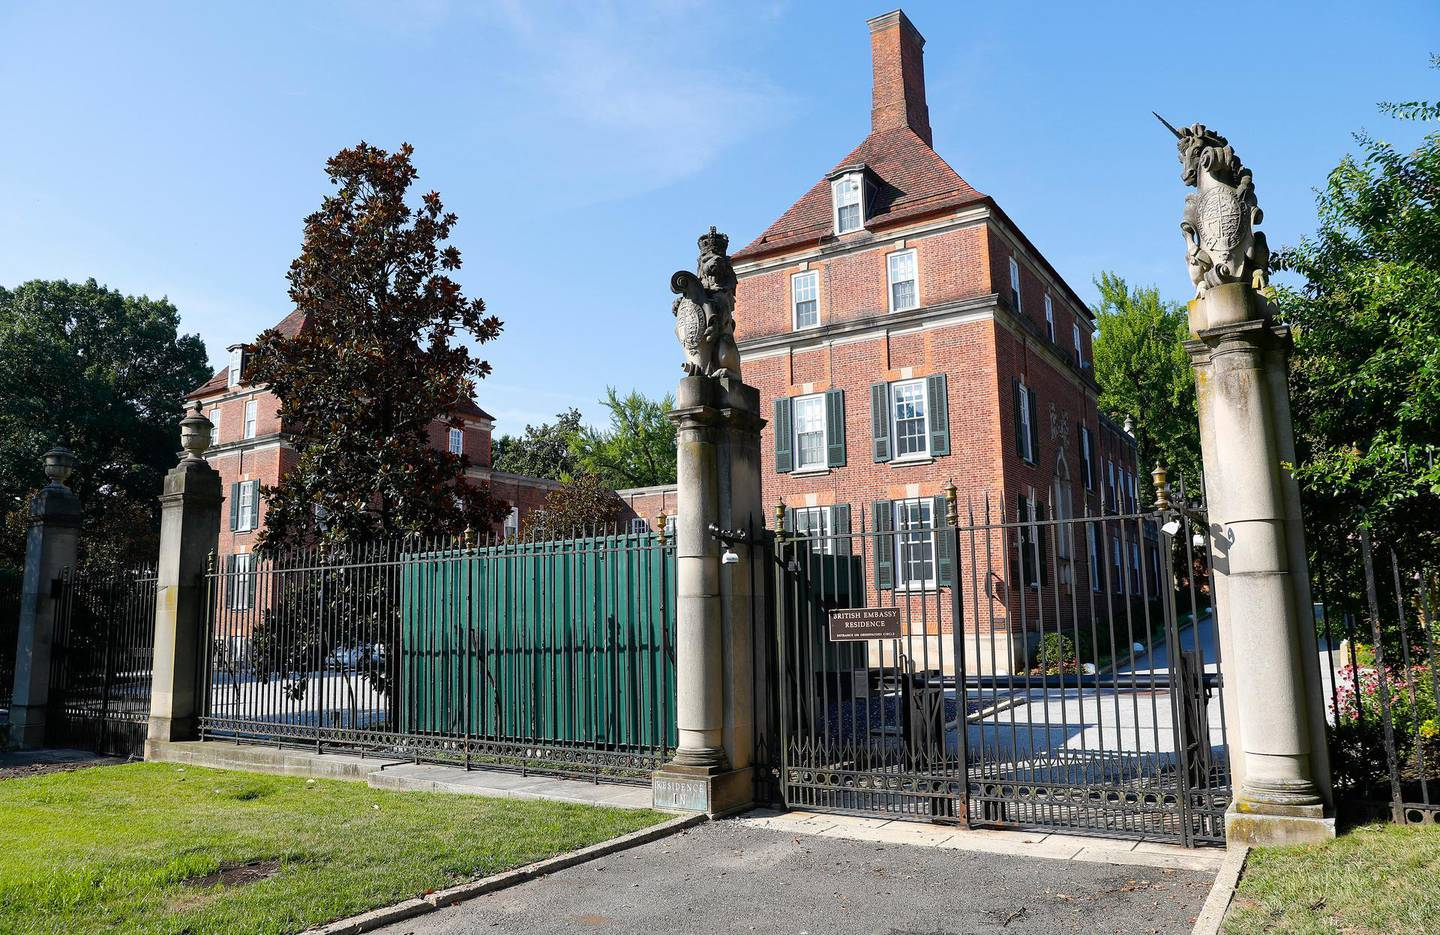 """The British Embassy Residence in Washington, Wednesday, July 10, 2019. British ambassador to the U.S., Kim Darroch, resigned Wednesday, just days after diplomatic cables criticizing President Donald Trump caused embarrassment to two countries that often celebrated having a """"special relationship"""". (AP Photo/Pablo Martinez Monsivais)"""